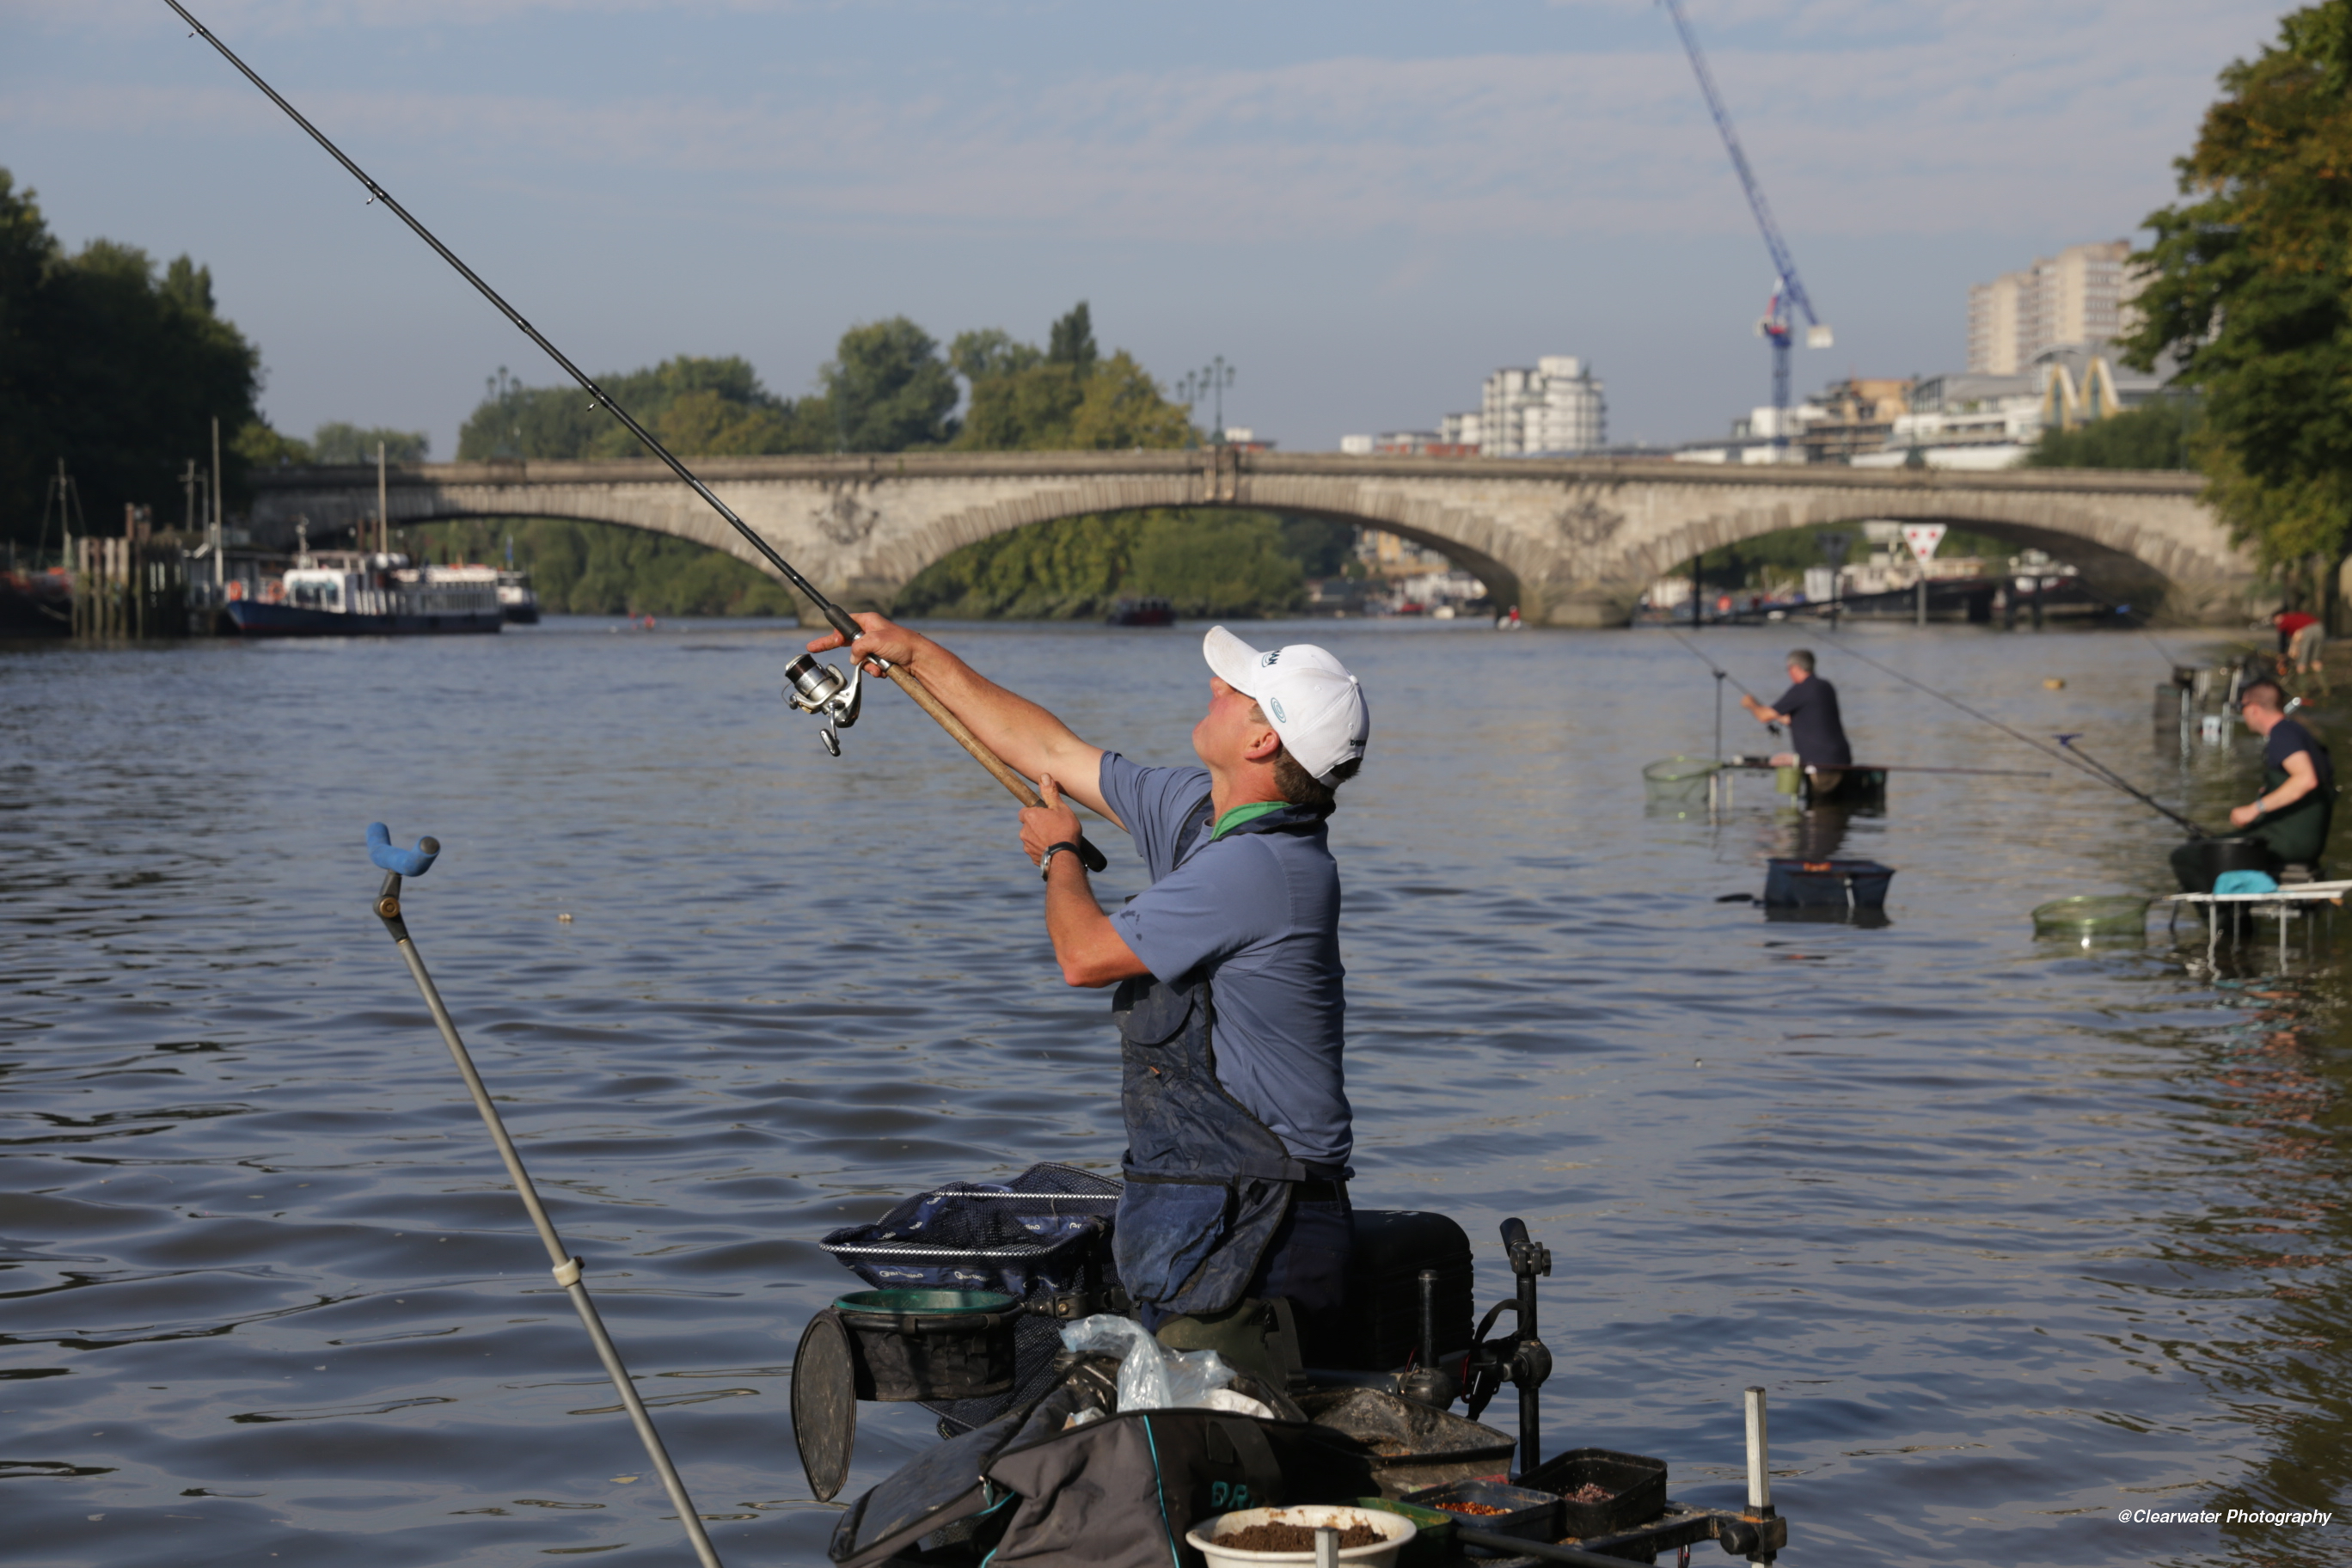 Thames Fishing Championship Details Revealed For 2016